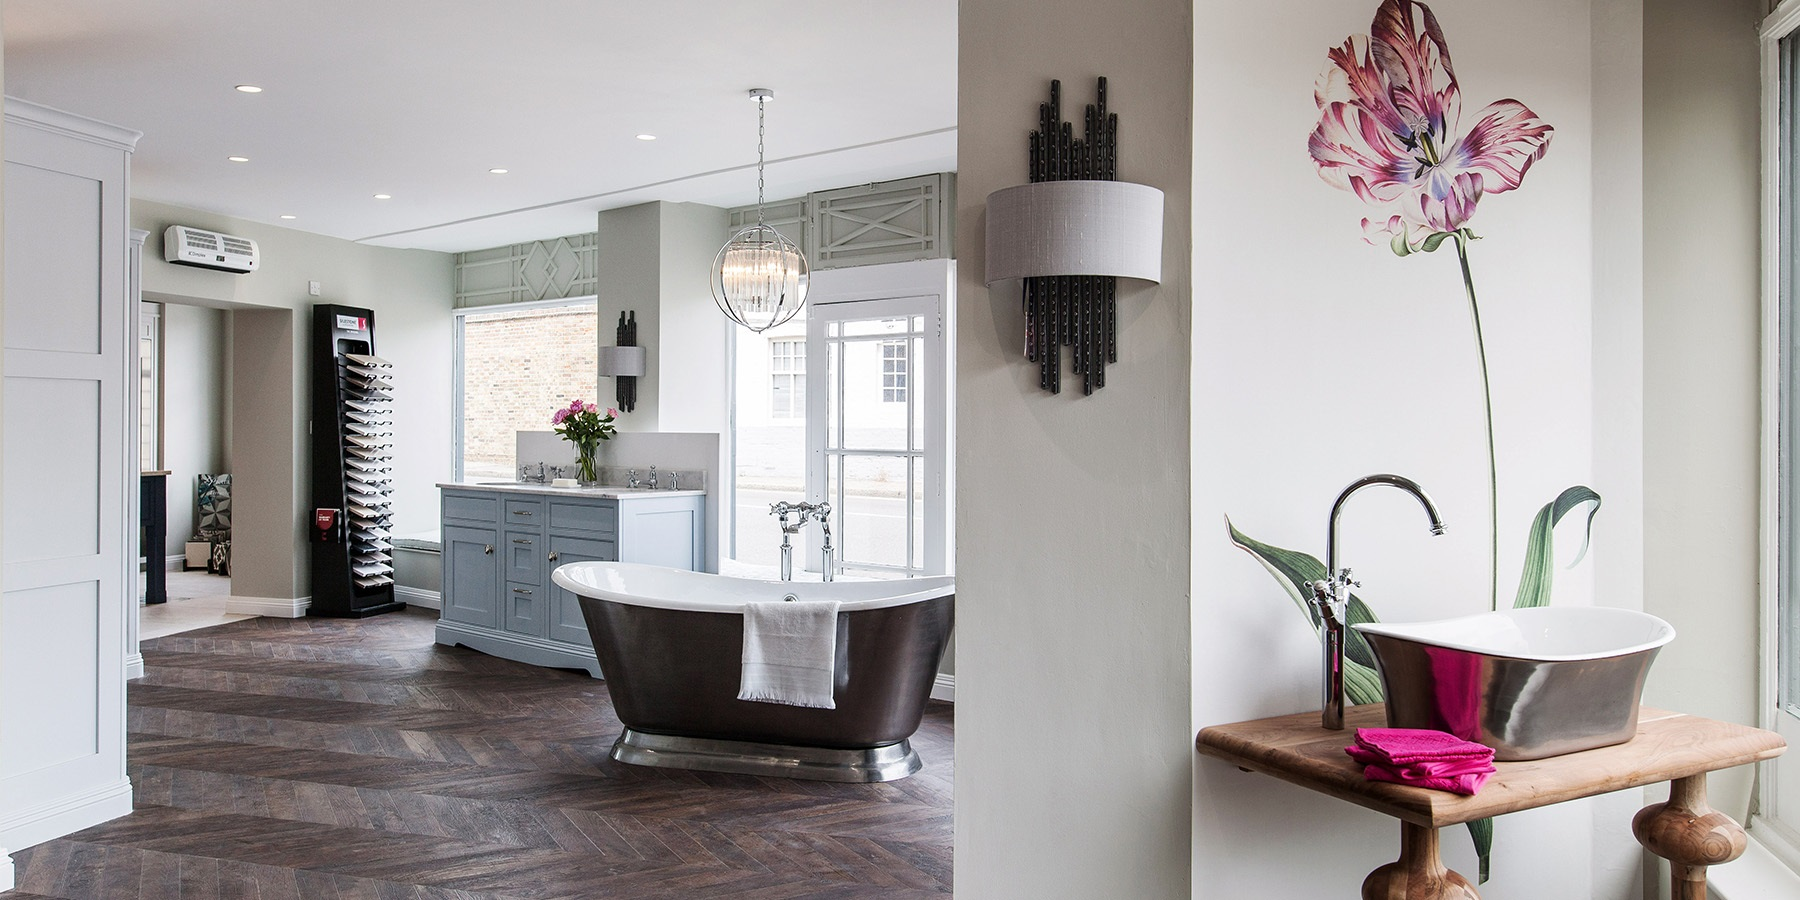 Burlanes Interiors Chelmsford Showroom - Burlanes bespoke, handmade furniture, and Hurlingham cast iron roll top bath.